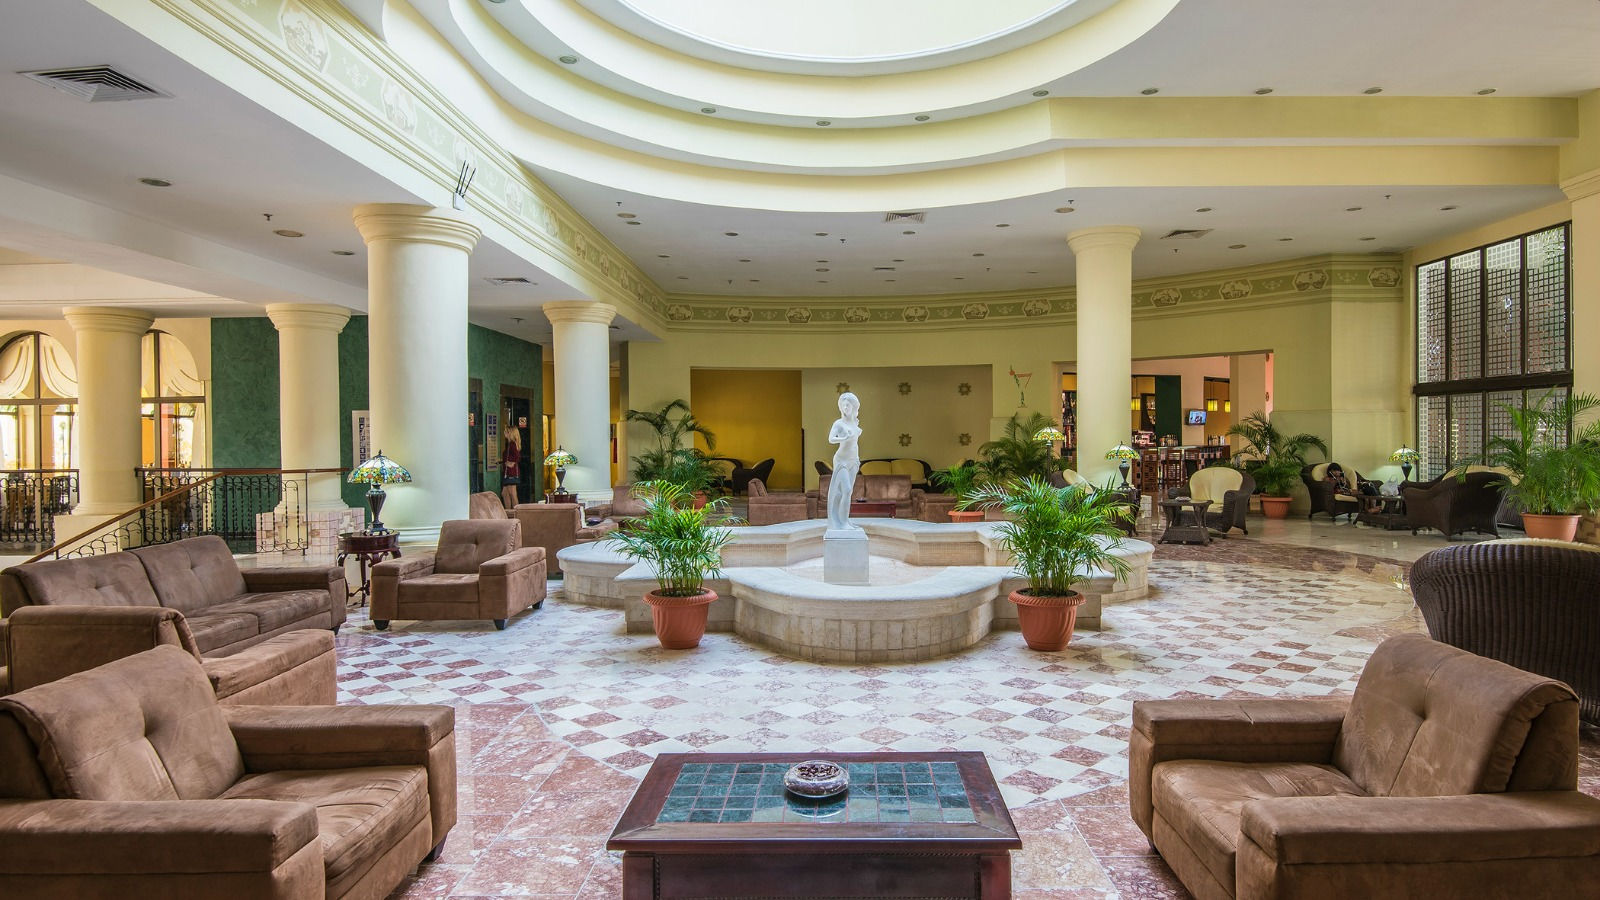 Hotel in Havana Cuba - Four Points by Sheraton Havana